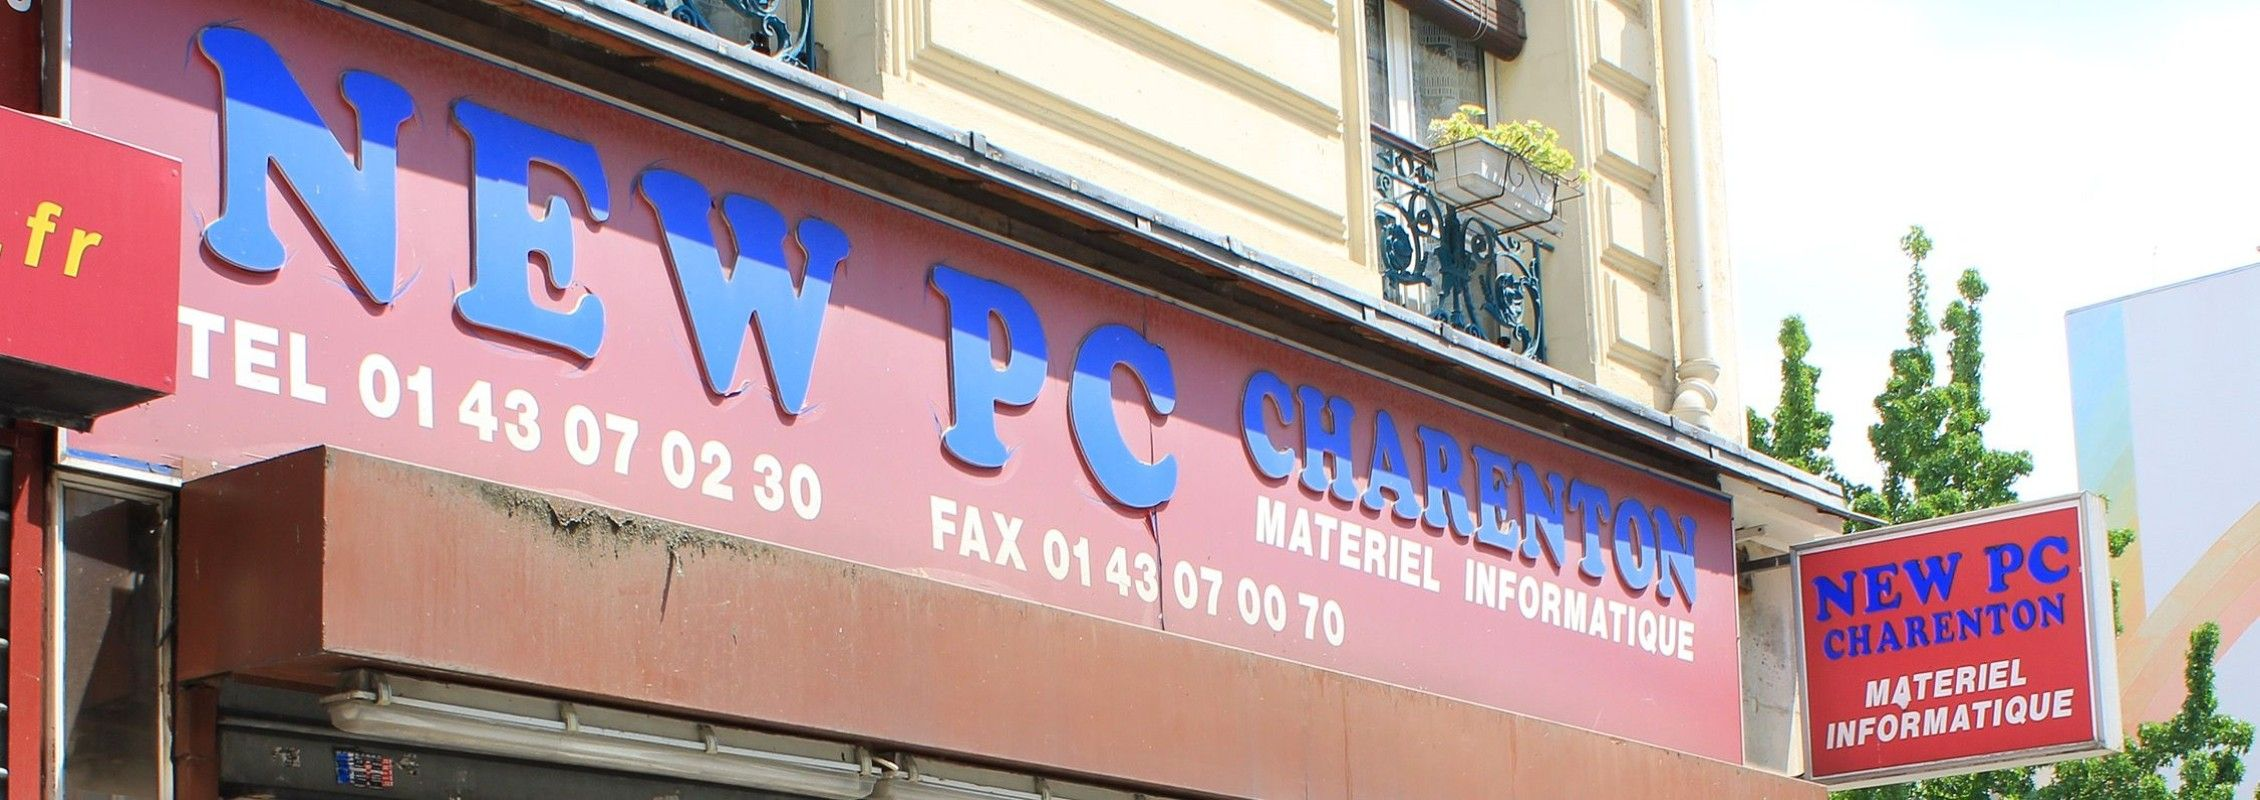 New PC Charenton